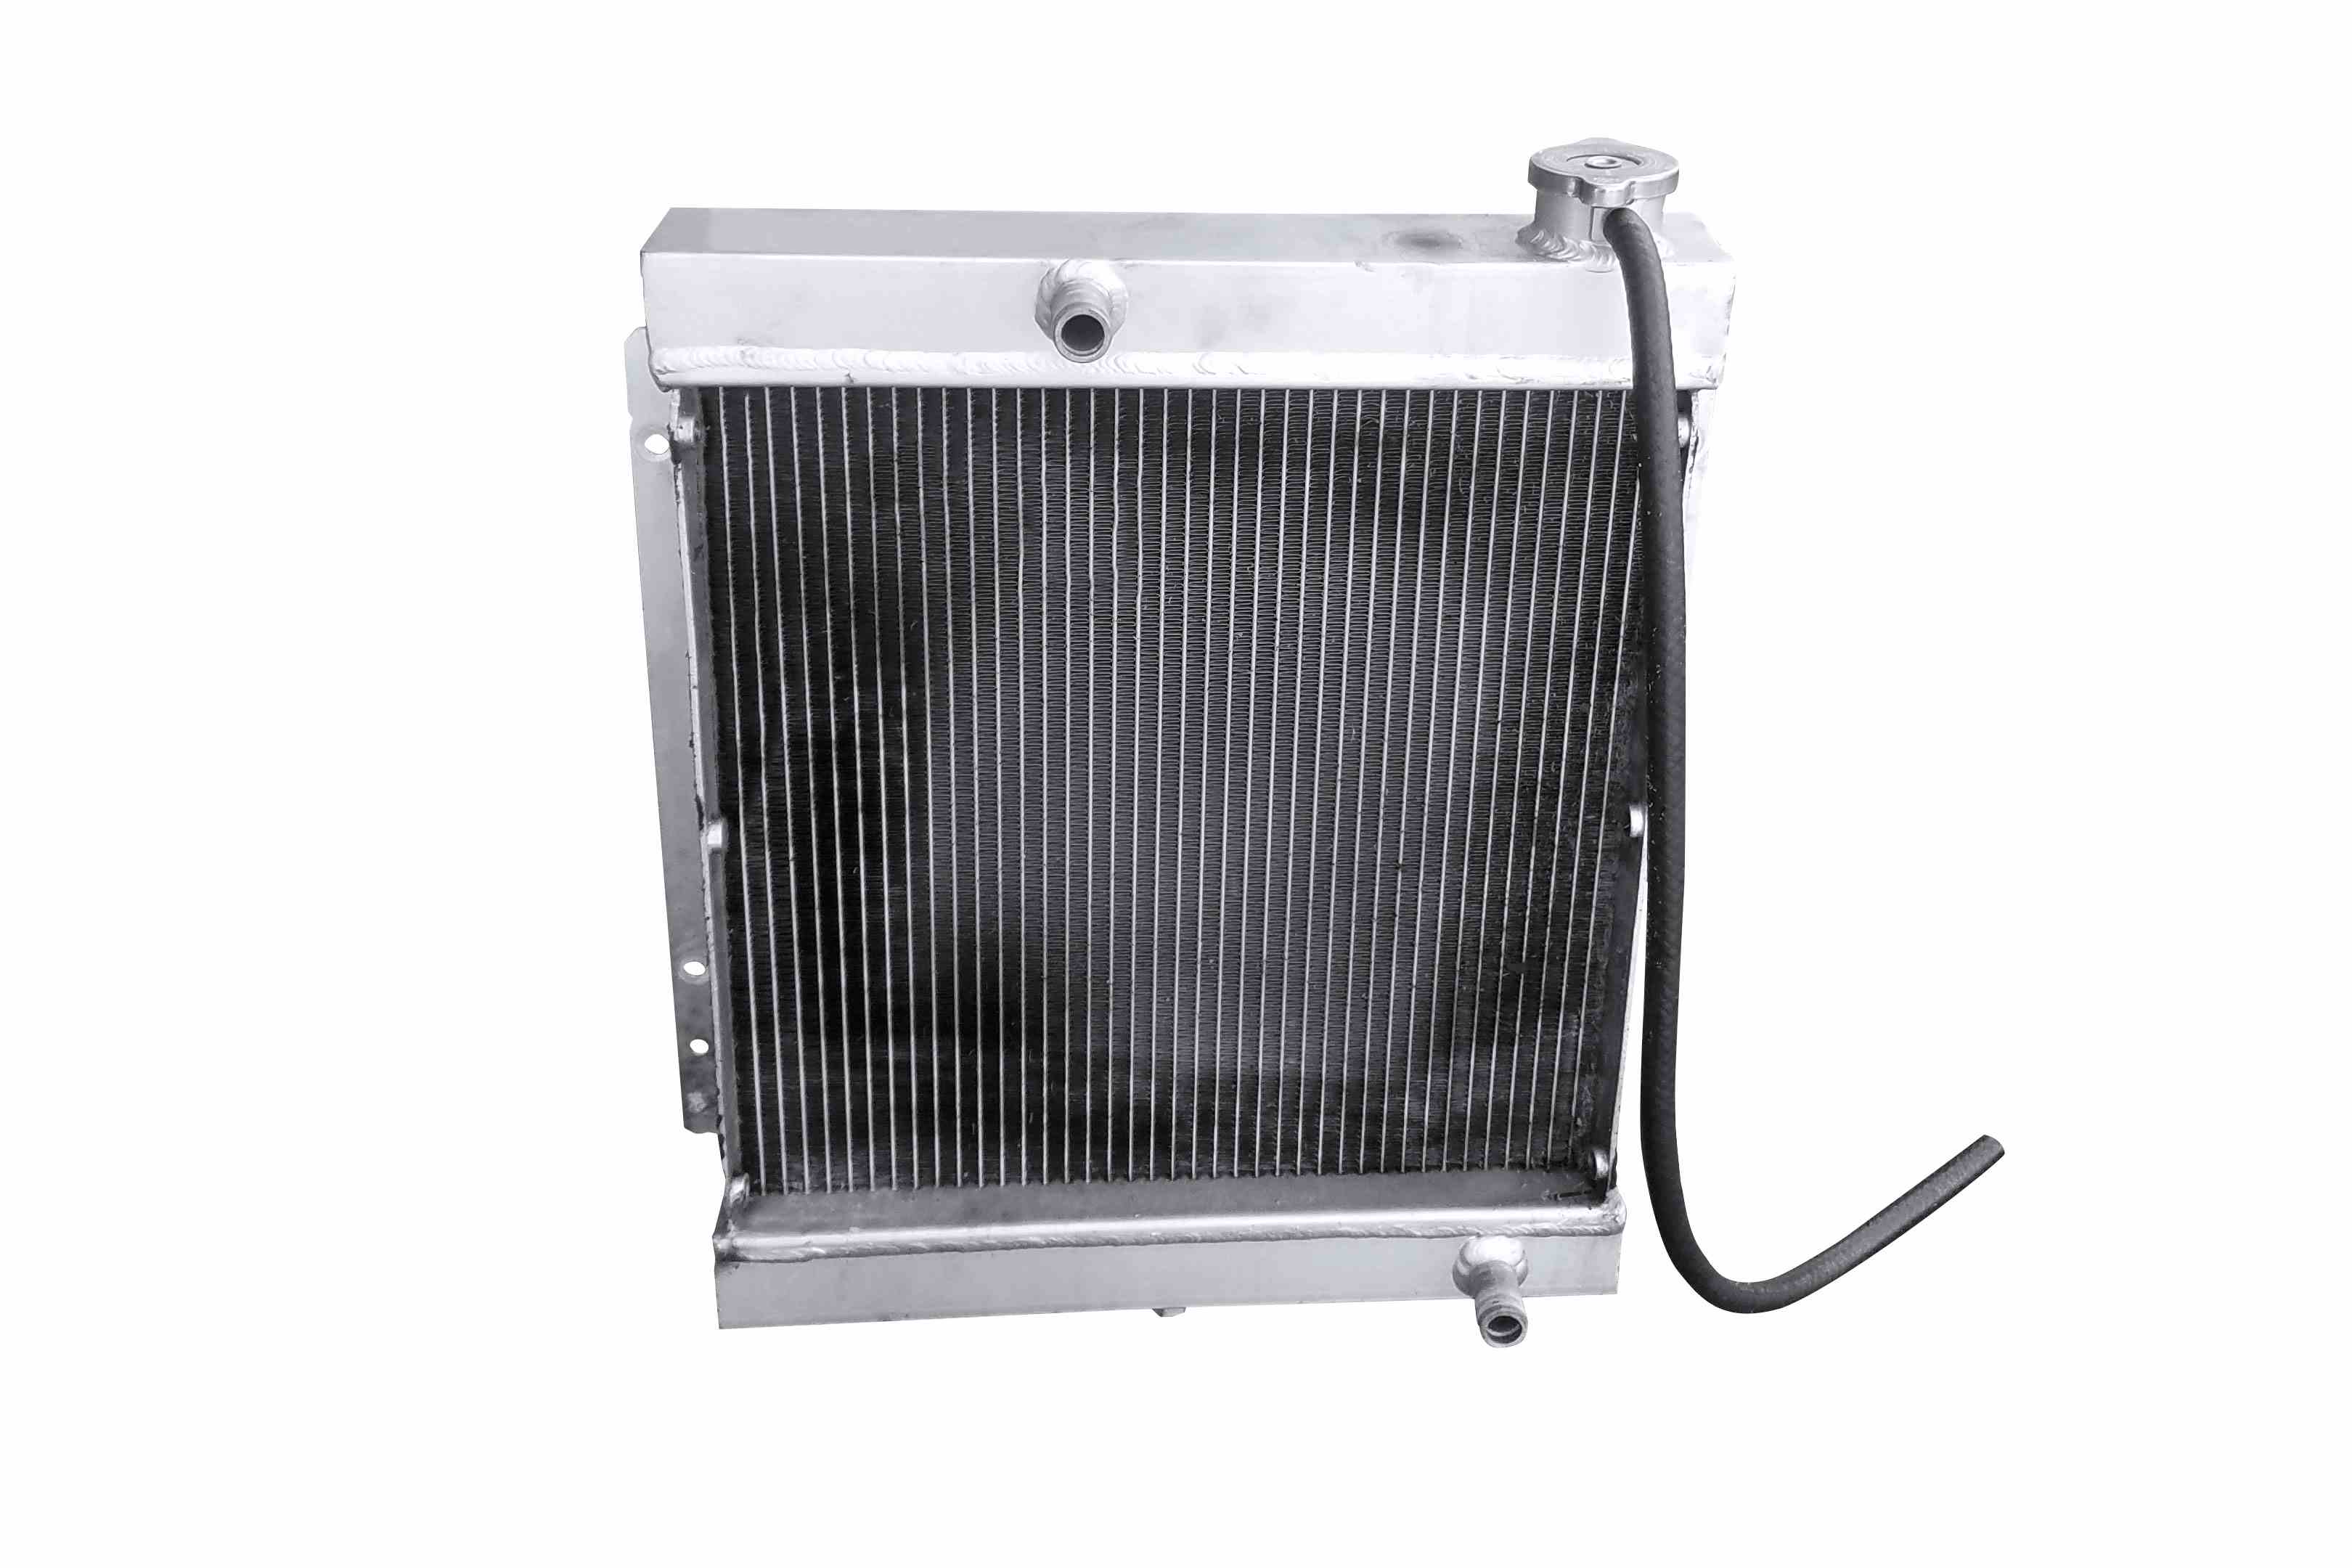 Replacement Radiator for WCDE-4-MHL Series Light Plants